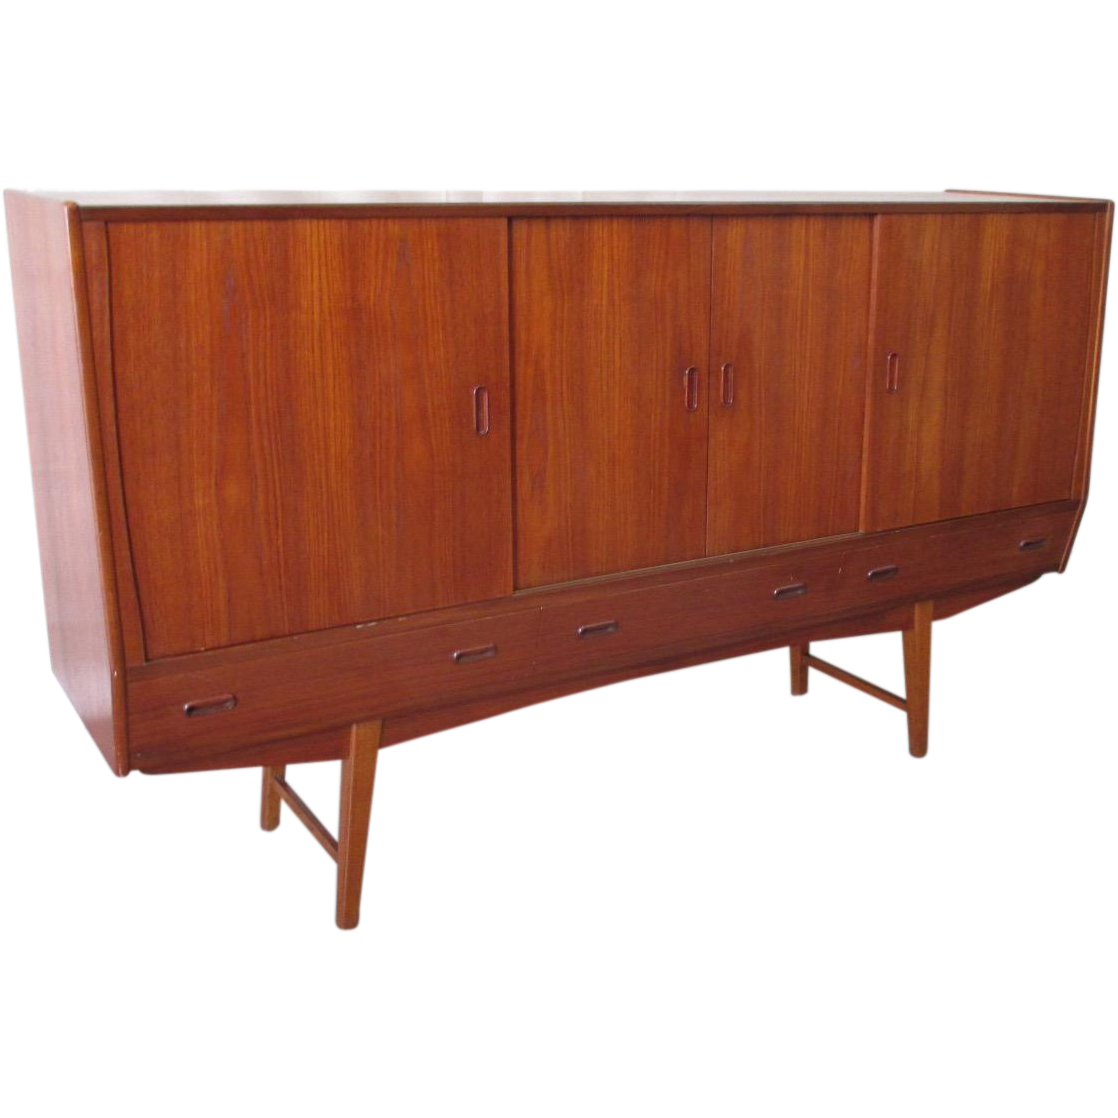 Mid-Century Modern Sideboard with Mirrored Bar